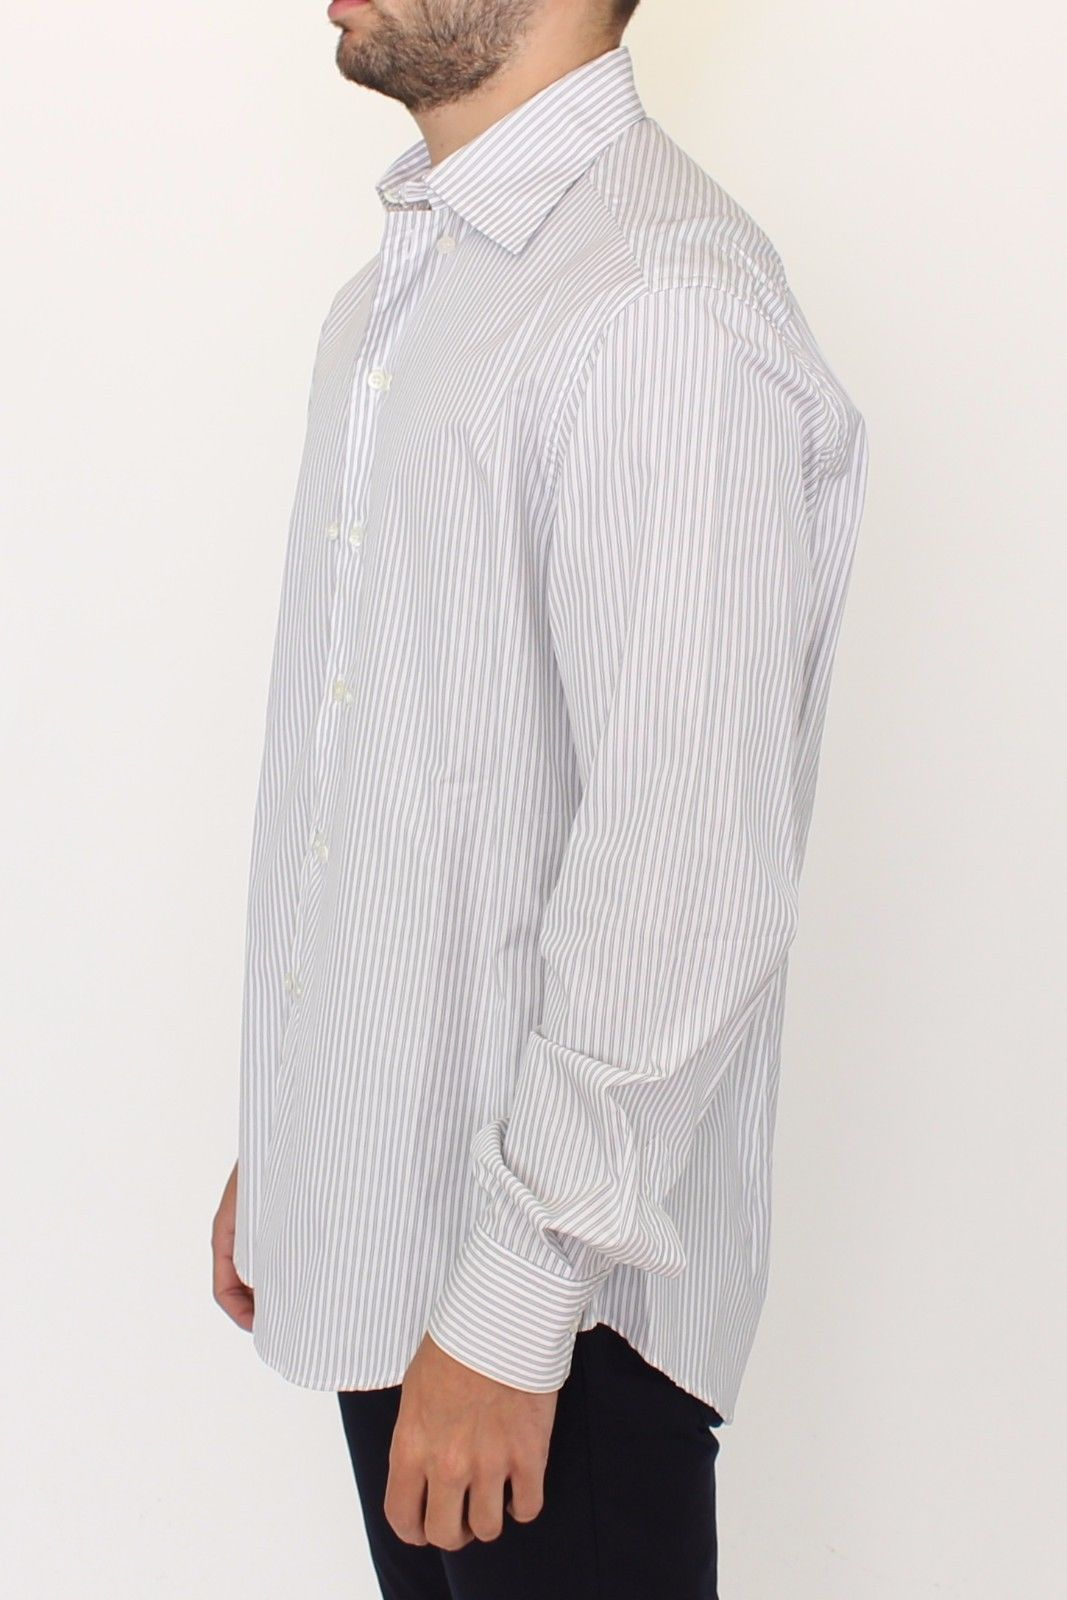 Ermanno Scervino White Gray Striped Regular Fit Casual Shirt